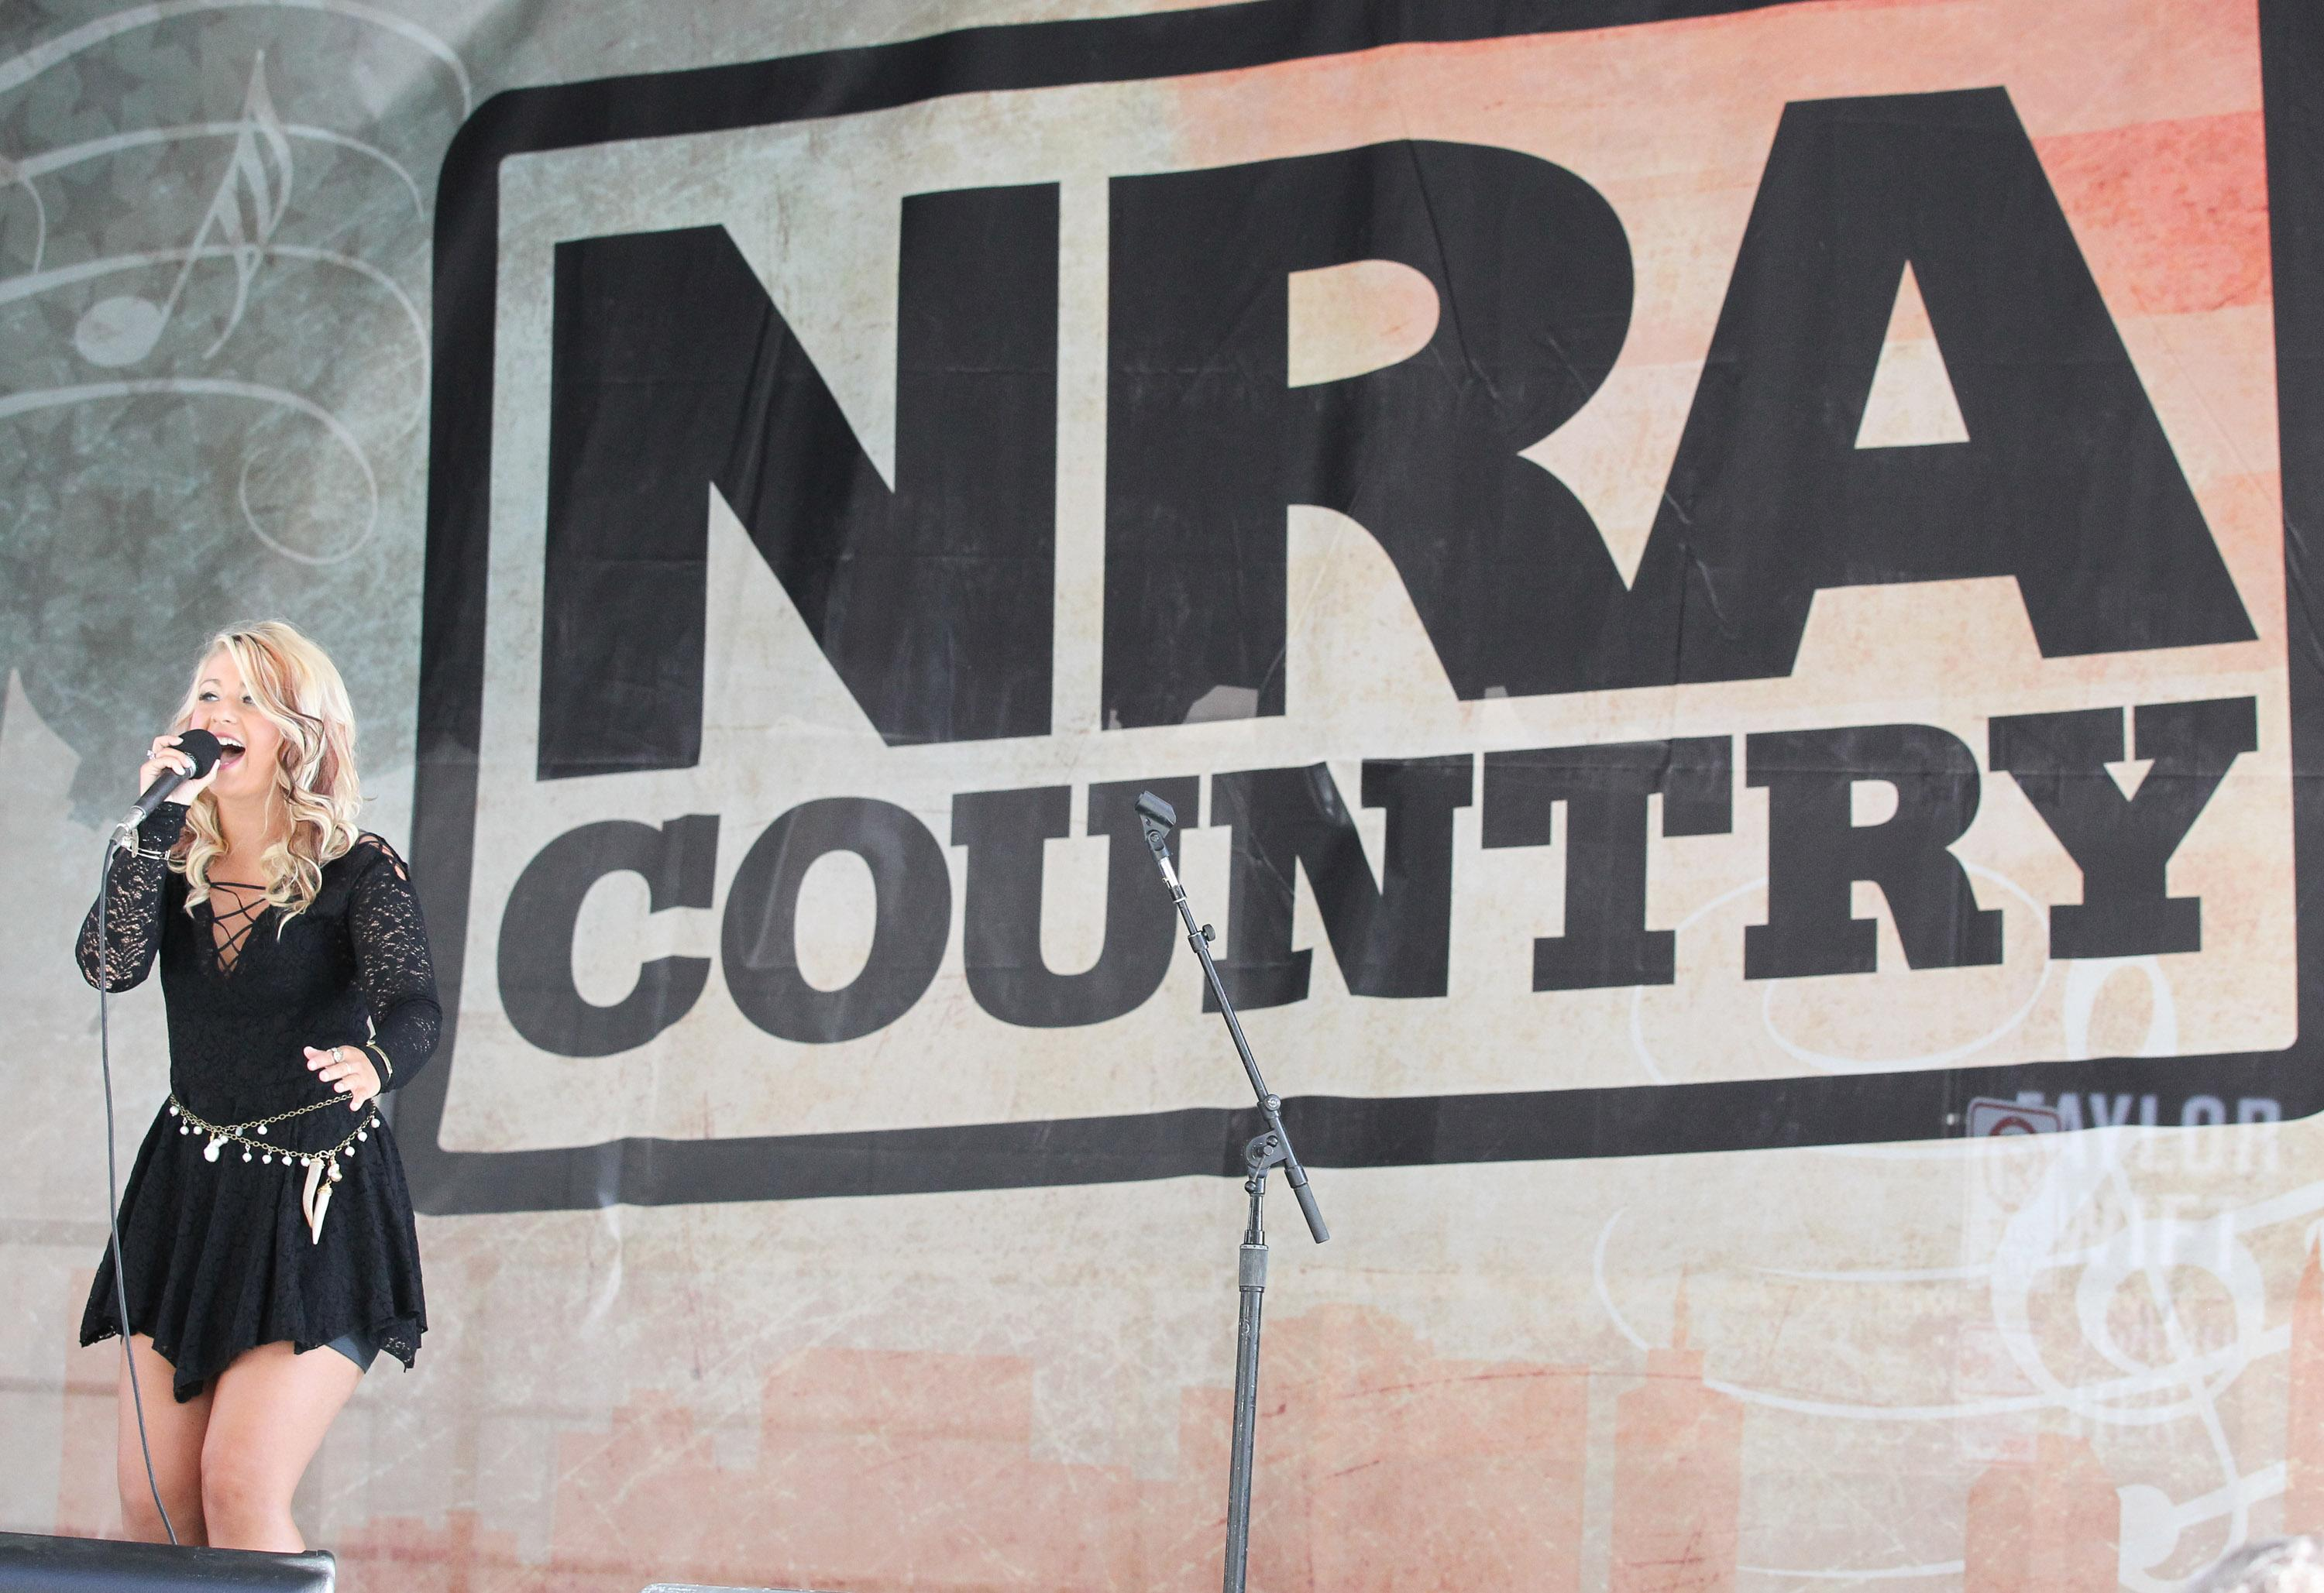 Guns and country: The twisted, tangled history of the NRA and Nashville